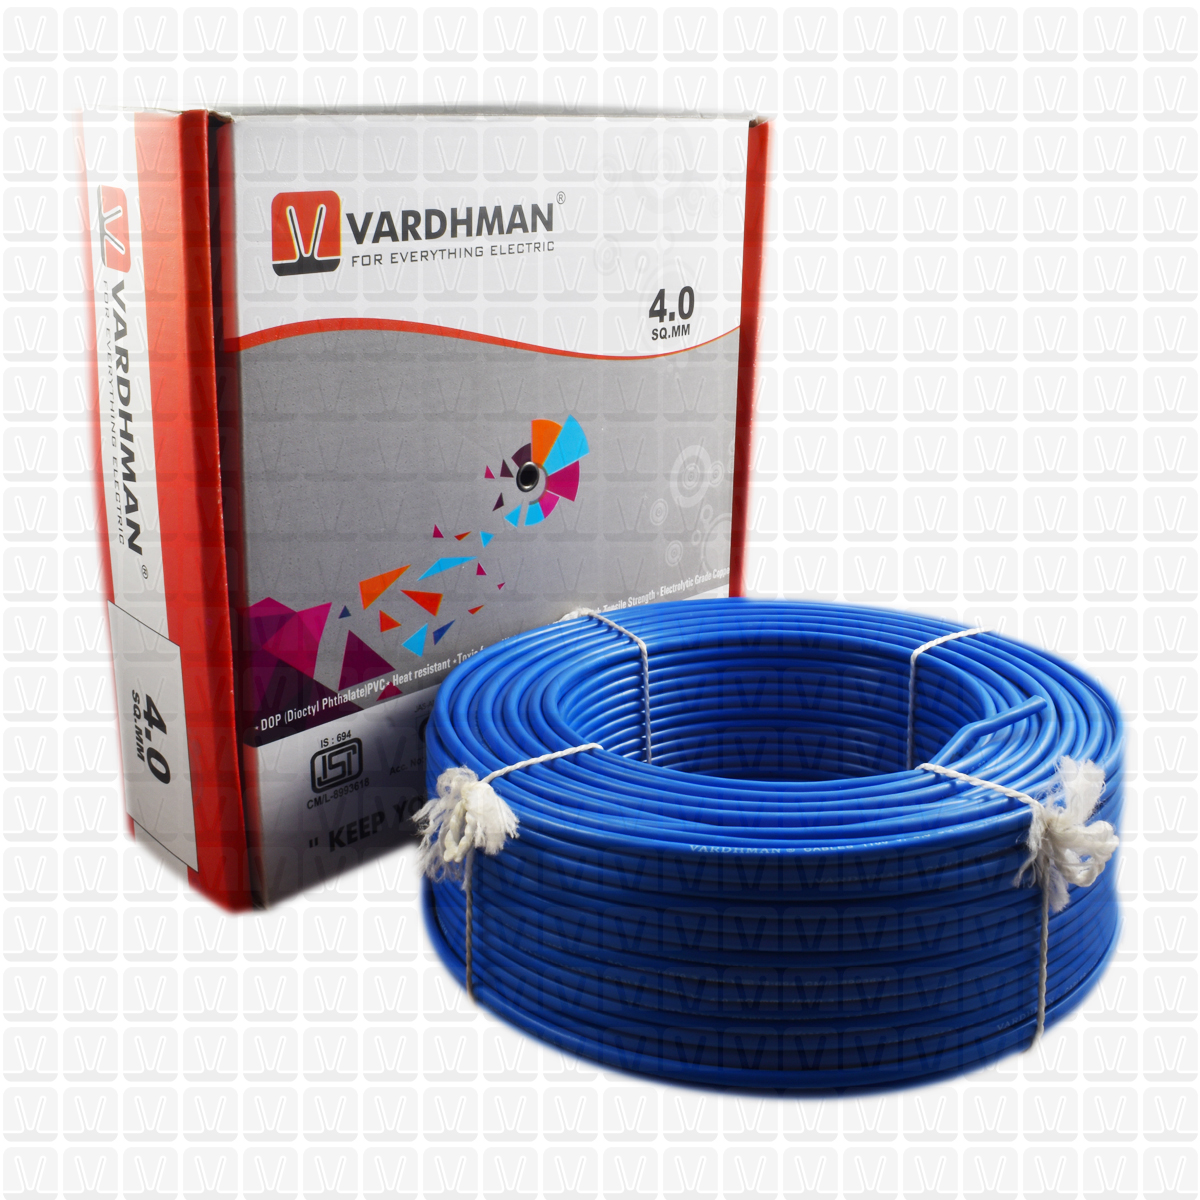 Vardhman 40 Mm Wire Blue 90 Mtr Bundle Multistrand Heat Resistant Wiring Shop